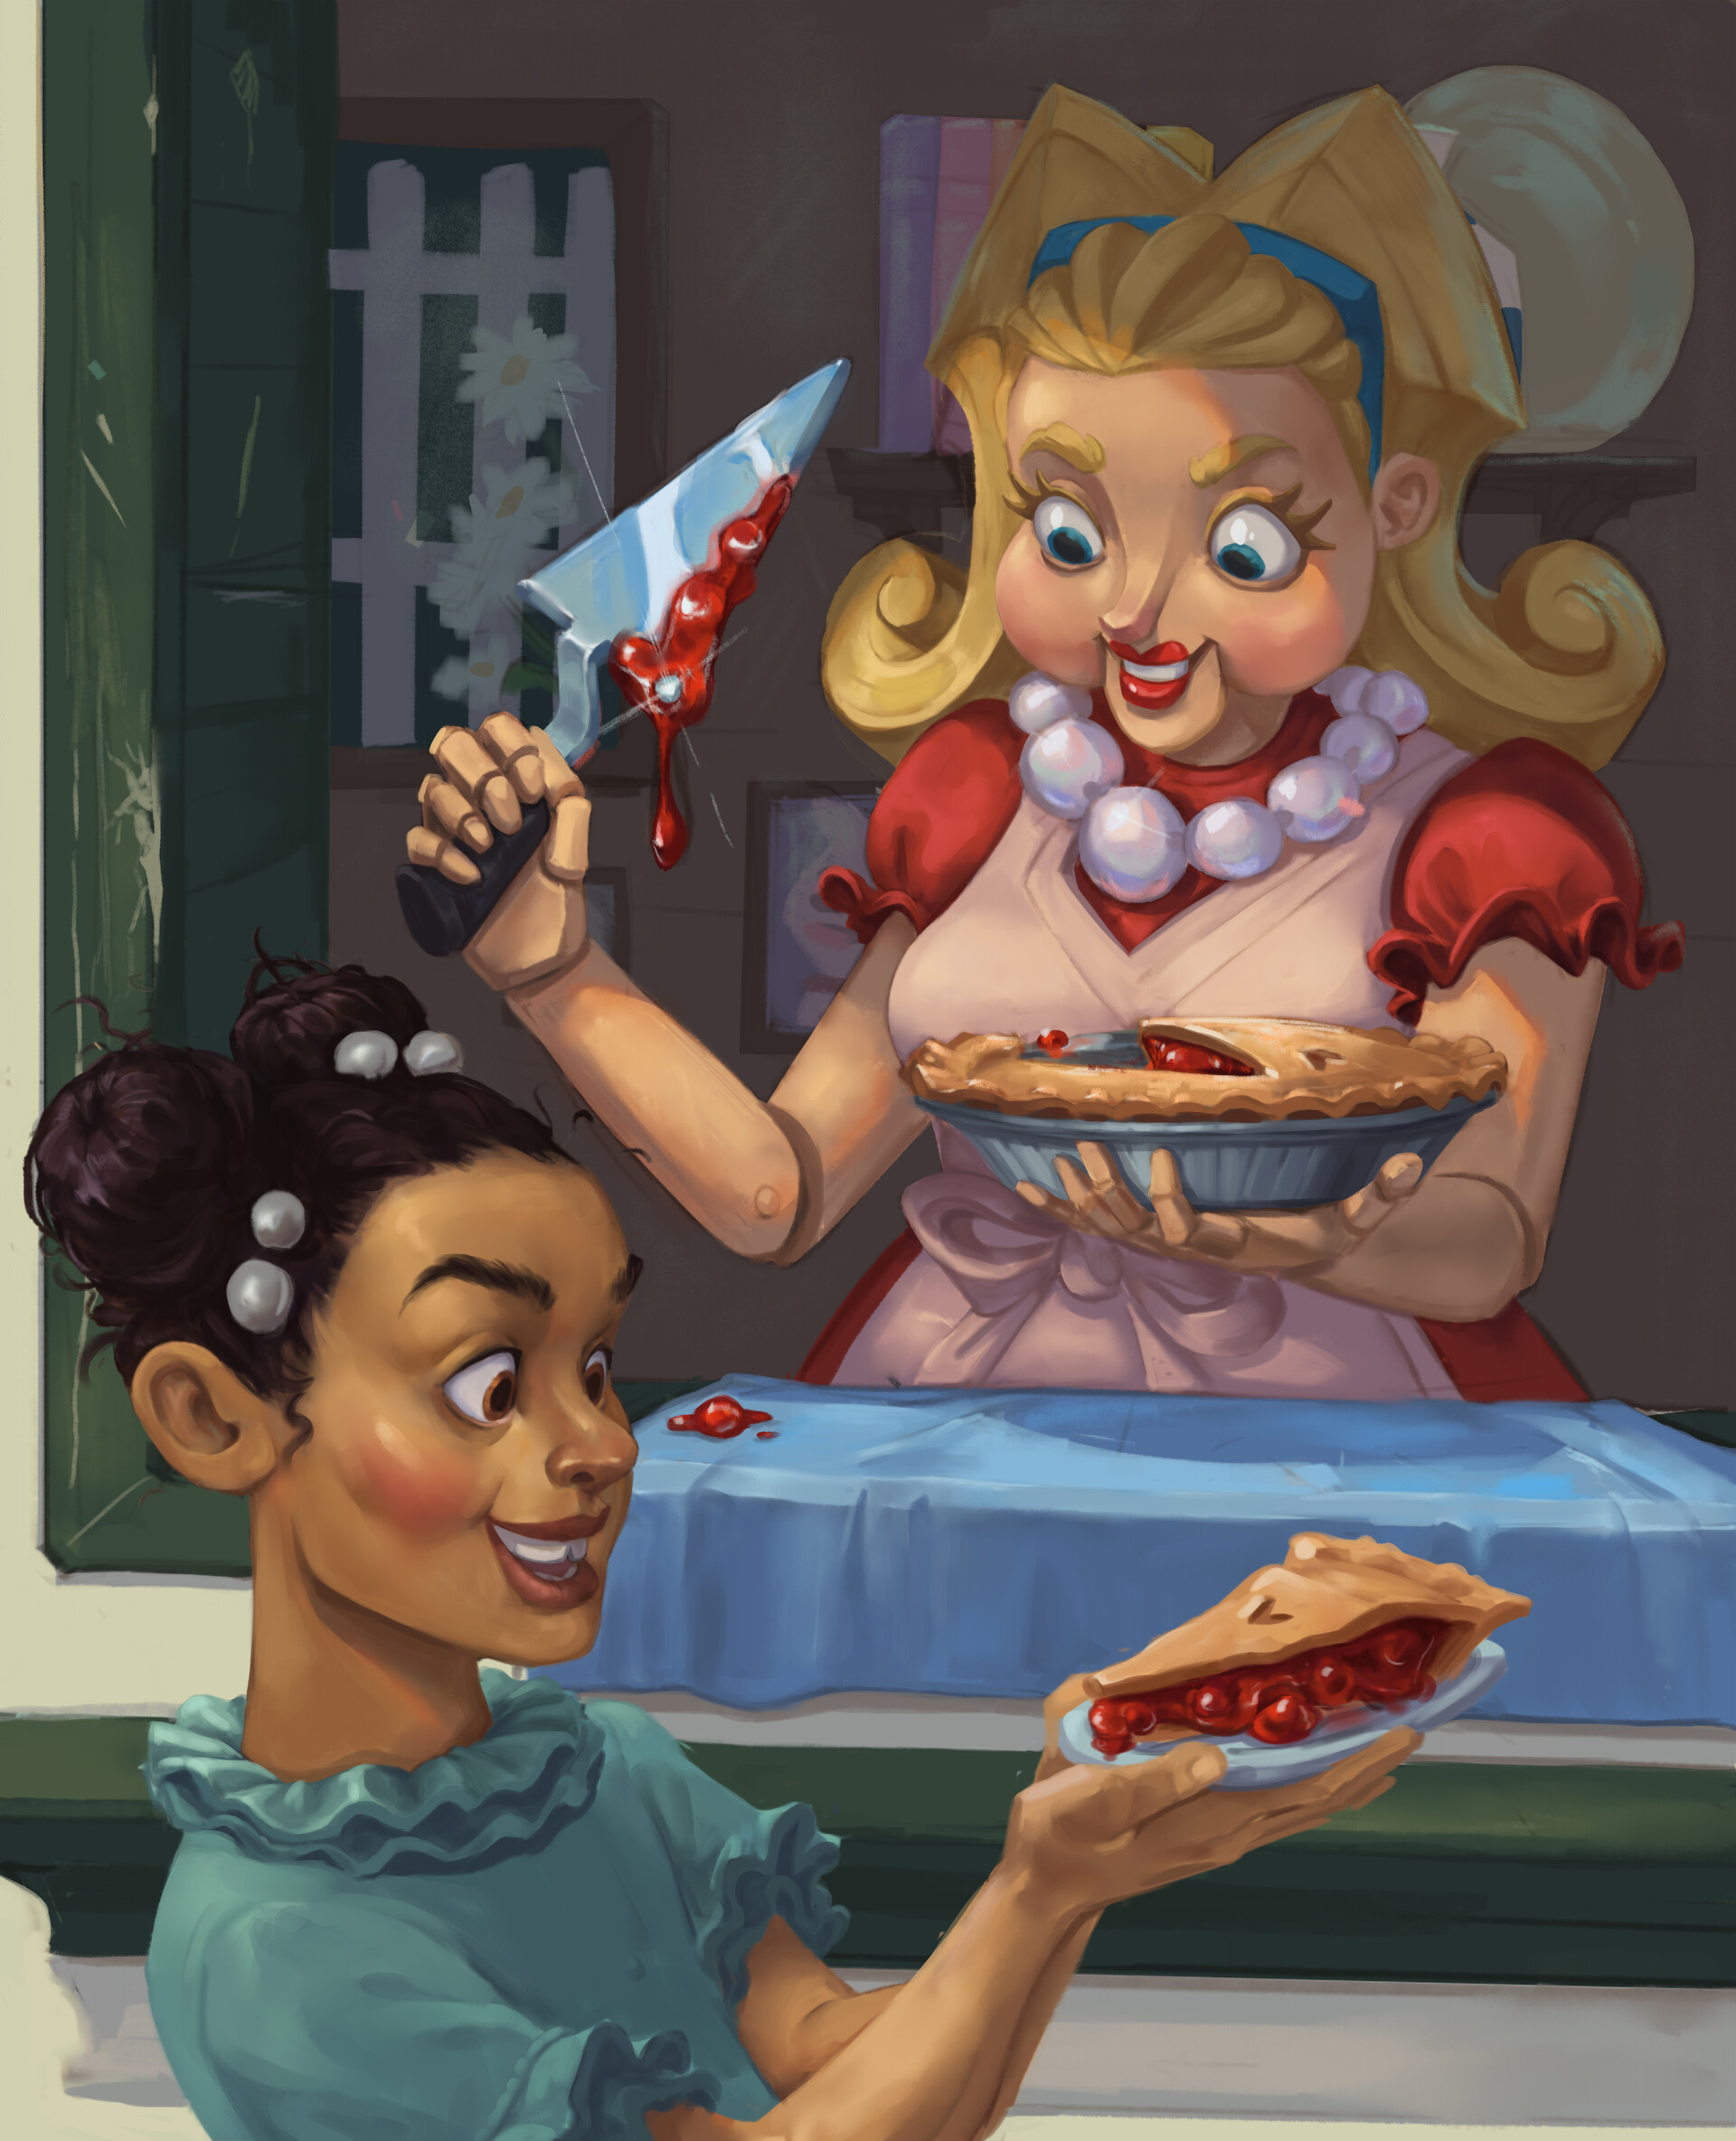 Daisy Danger giving a child a pie... aggressively.